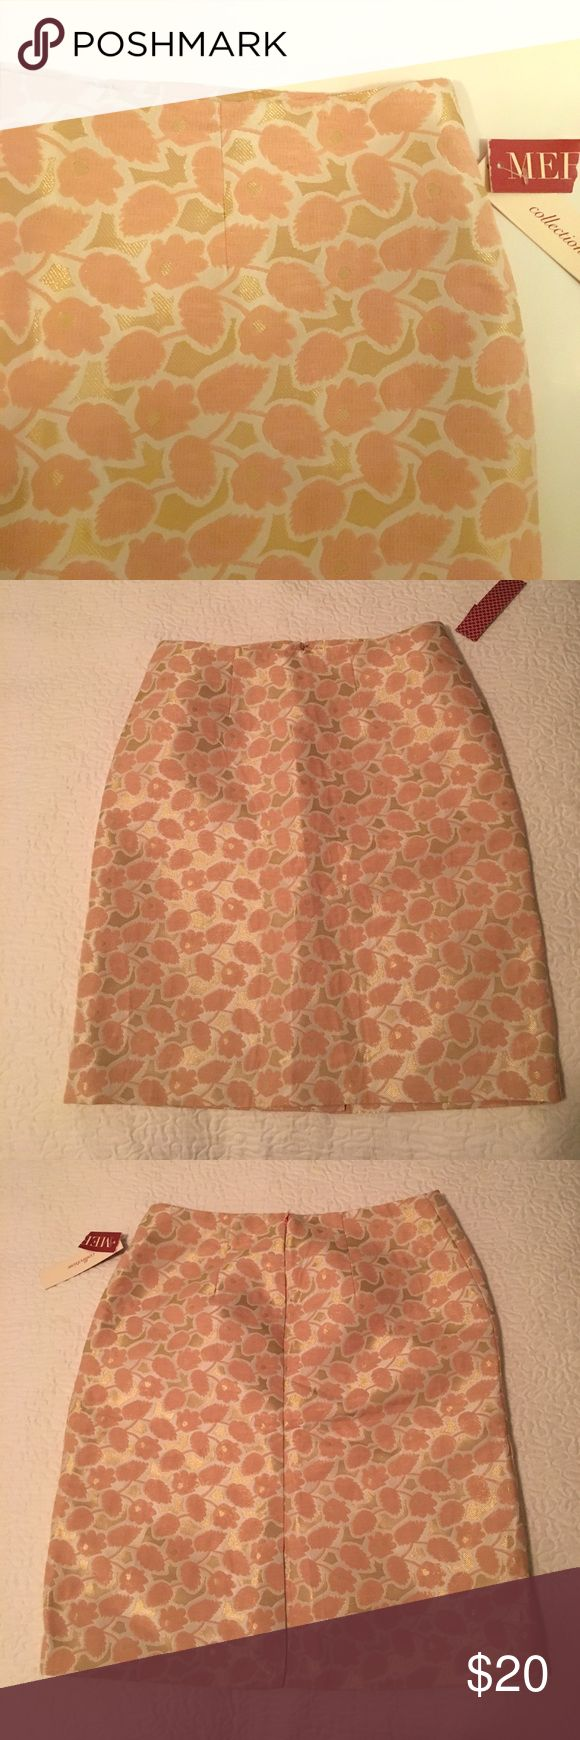 NWT blush pink and gold pencil skirt Brand-new with tags blush pink and gold Jacquard pencil skirt. 20 3/4 inches long, perfect for spring.  Size two but fits like a four. Brand is morons but looks like jcrew :) J. Crew Skirts Pencil